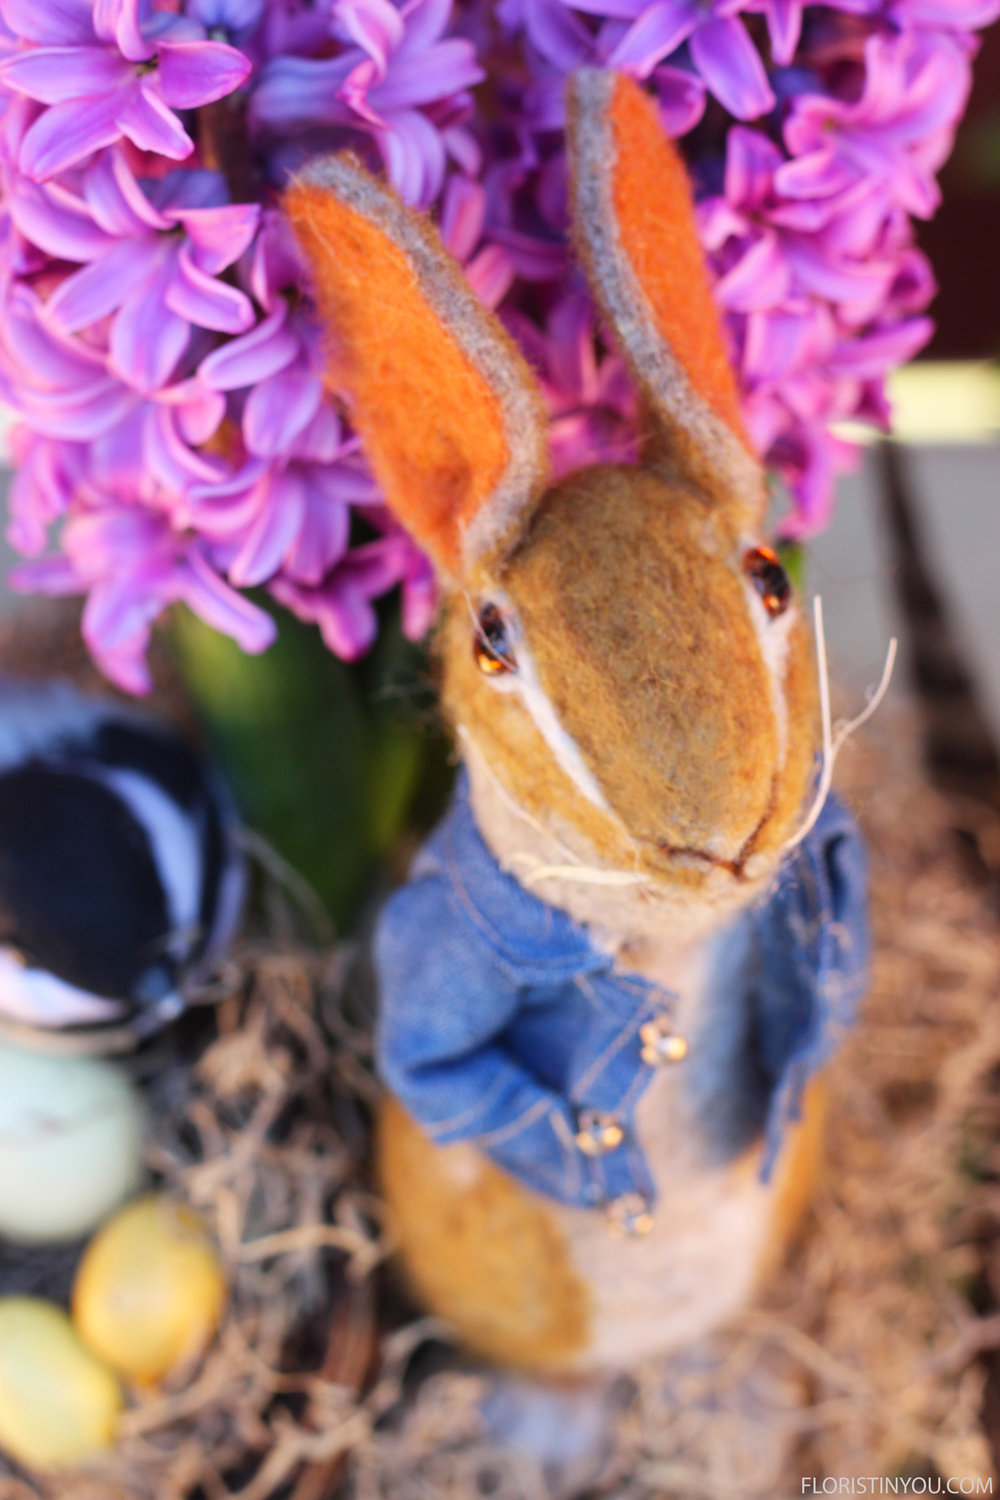 Love the dear Peter Rabbit.